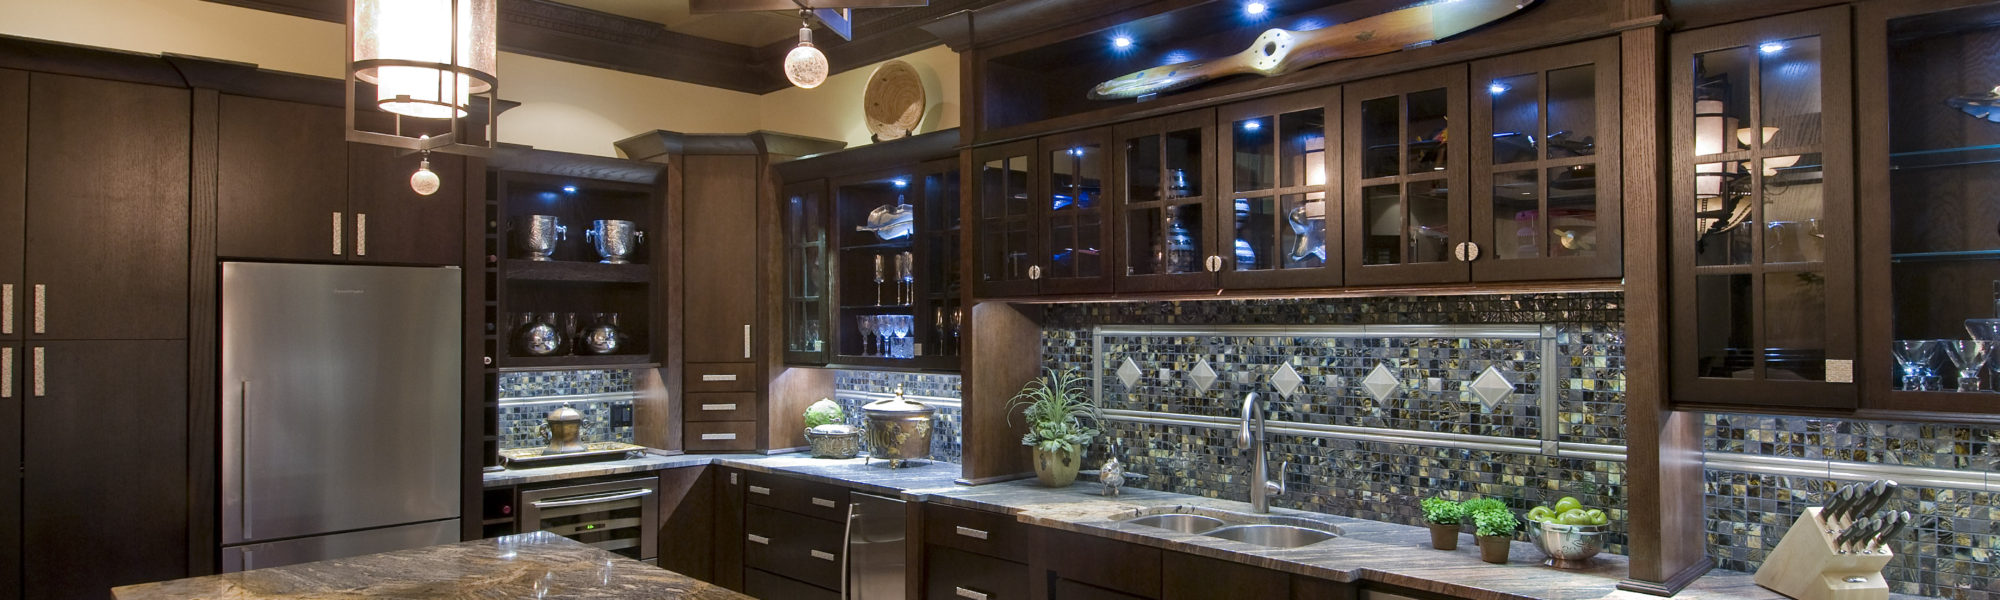 Renu Remodeling Chicago Home Remodelingrenu Remodeling Your Home Remodeler Refacing